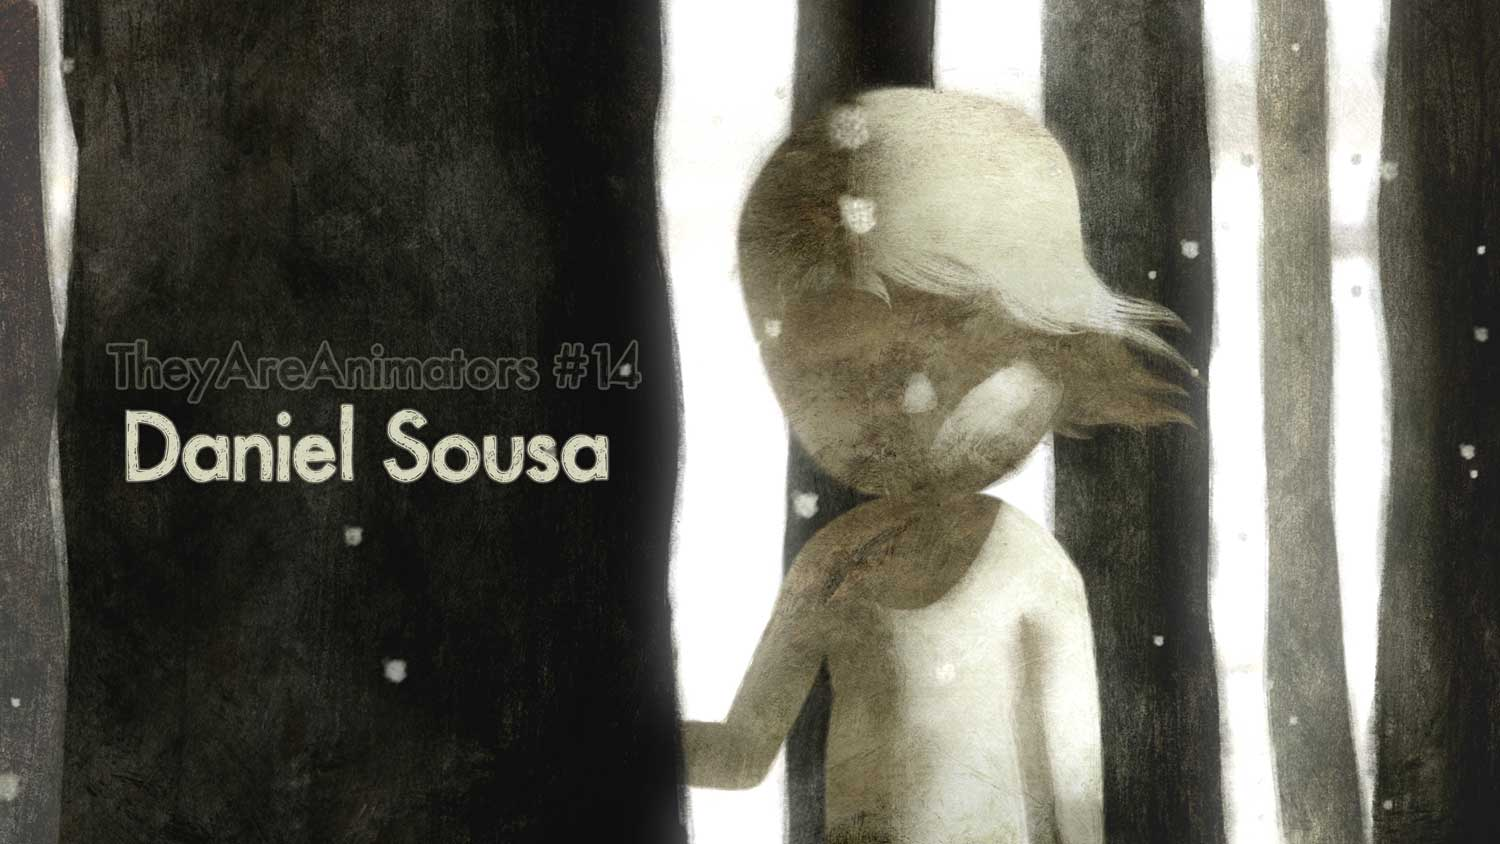 Daniel_Sousa_Animation_01.jpg